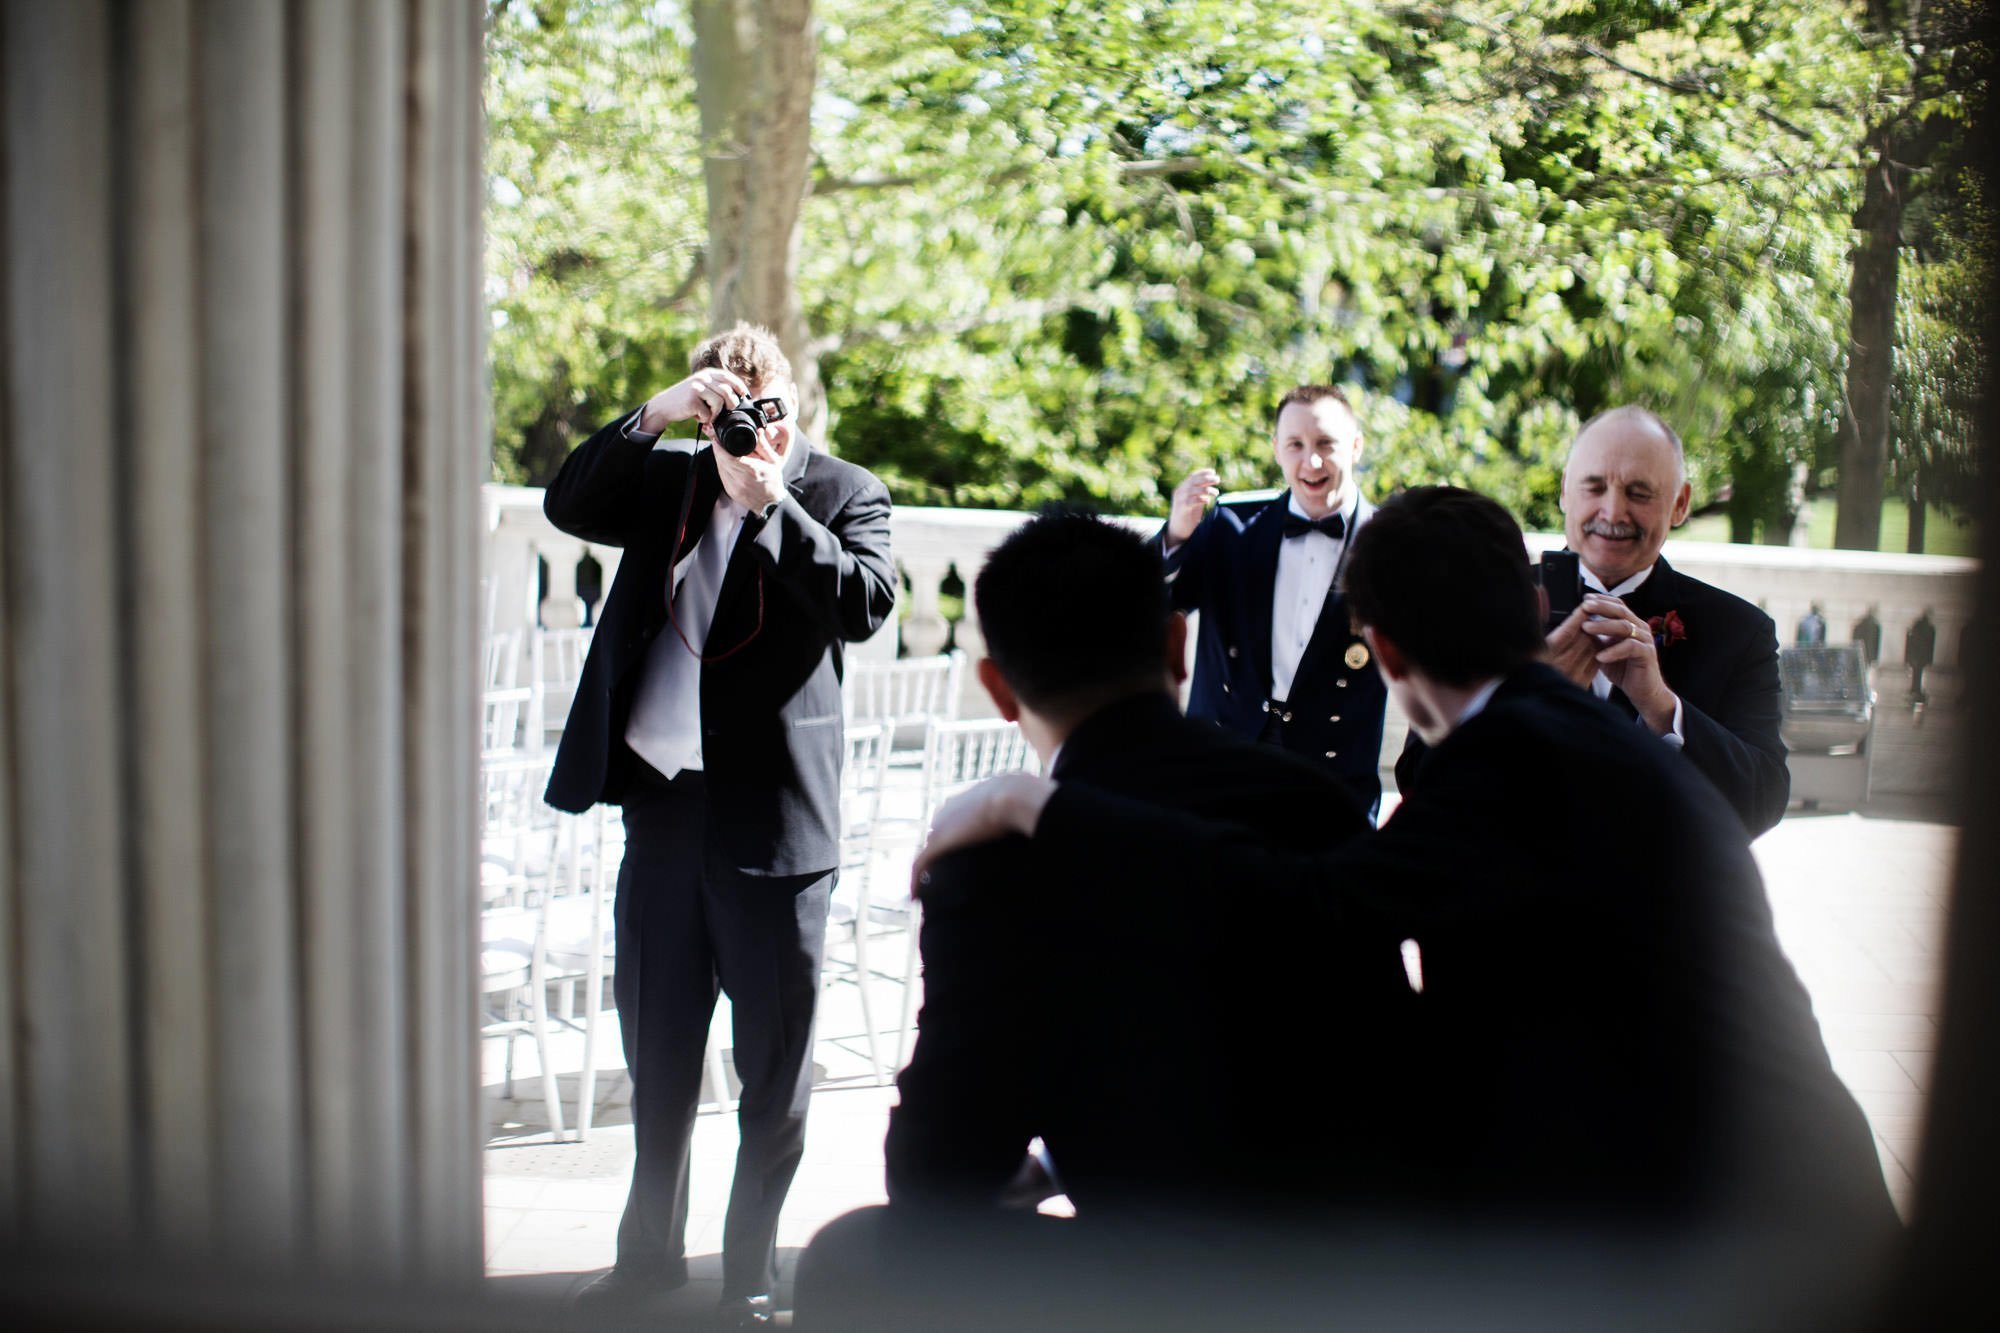 Groomsmen pose for pictures before the ceremony.